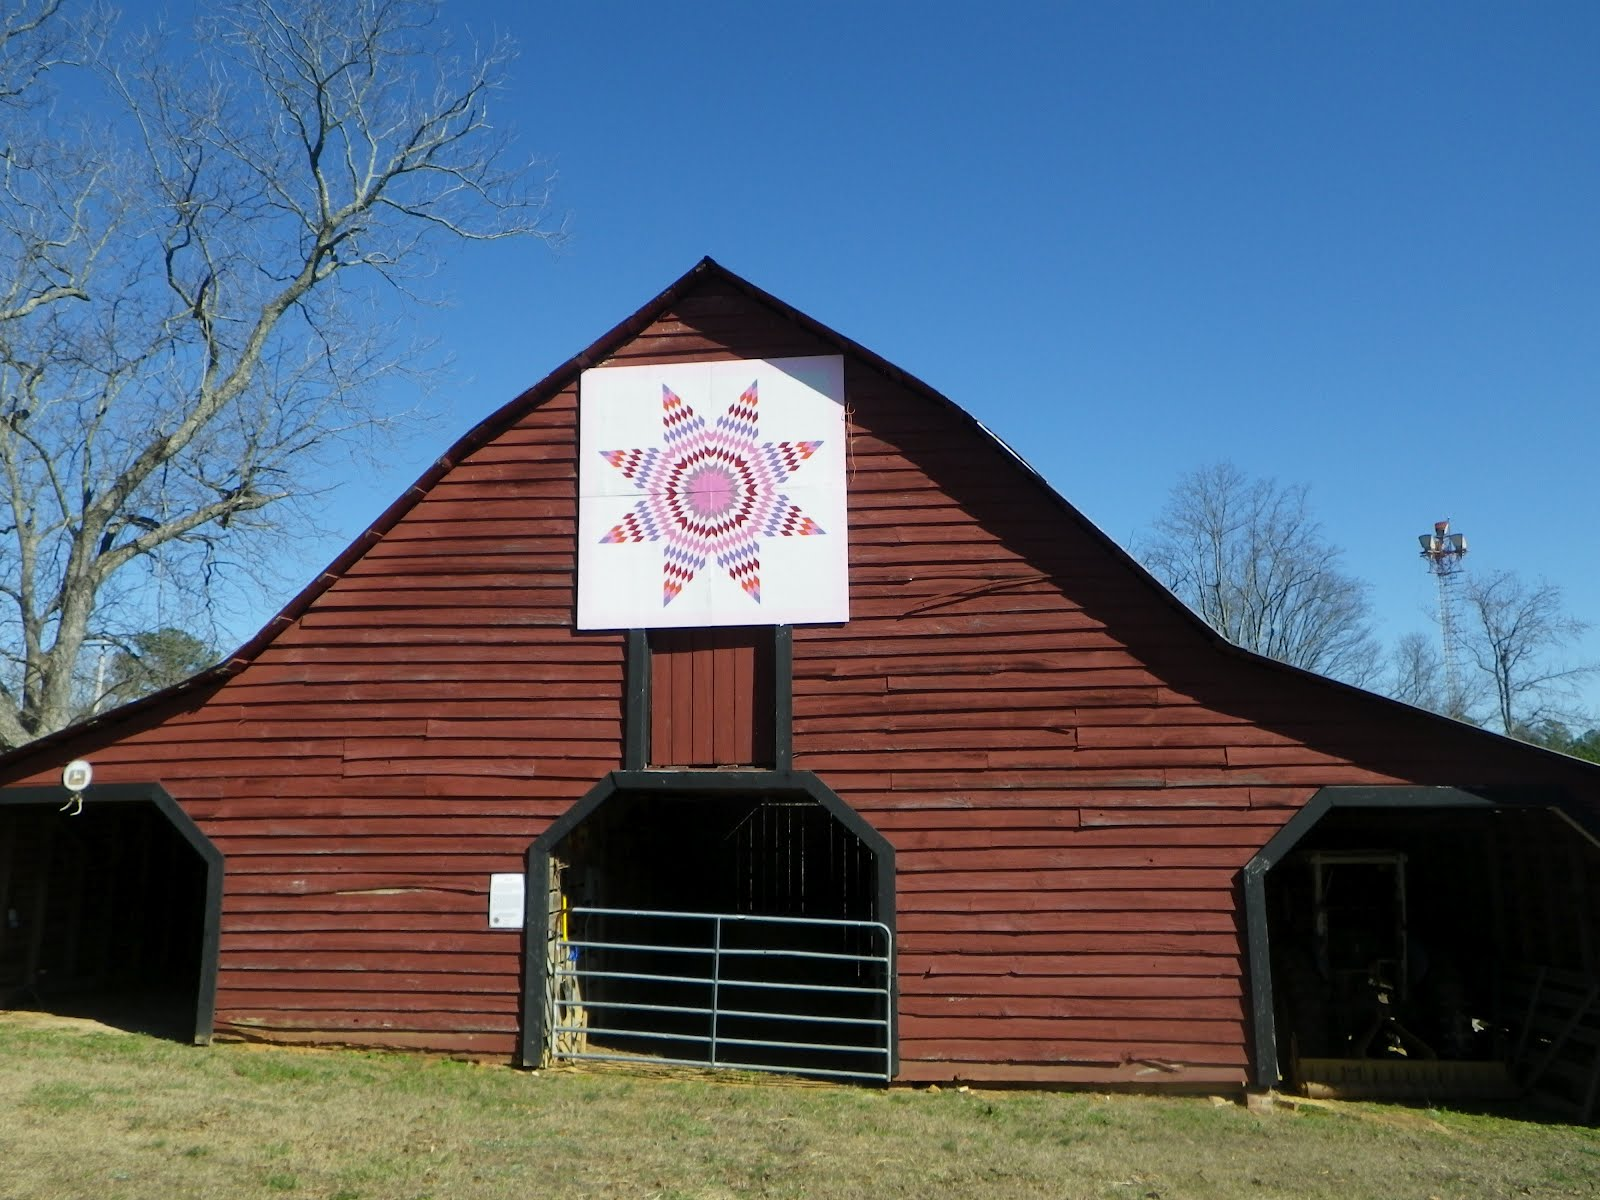 Barn Quilts And The American Quilt Trail February